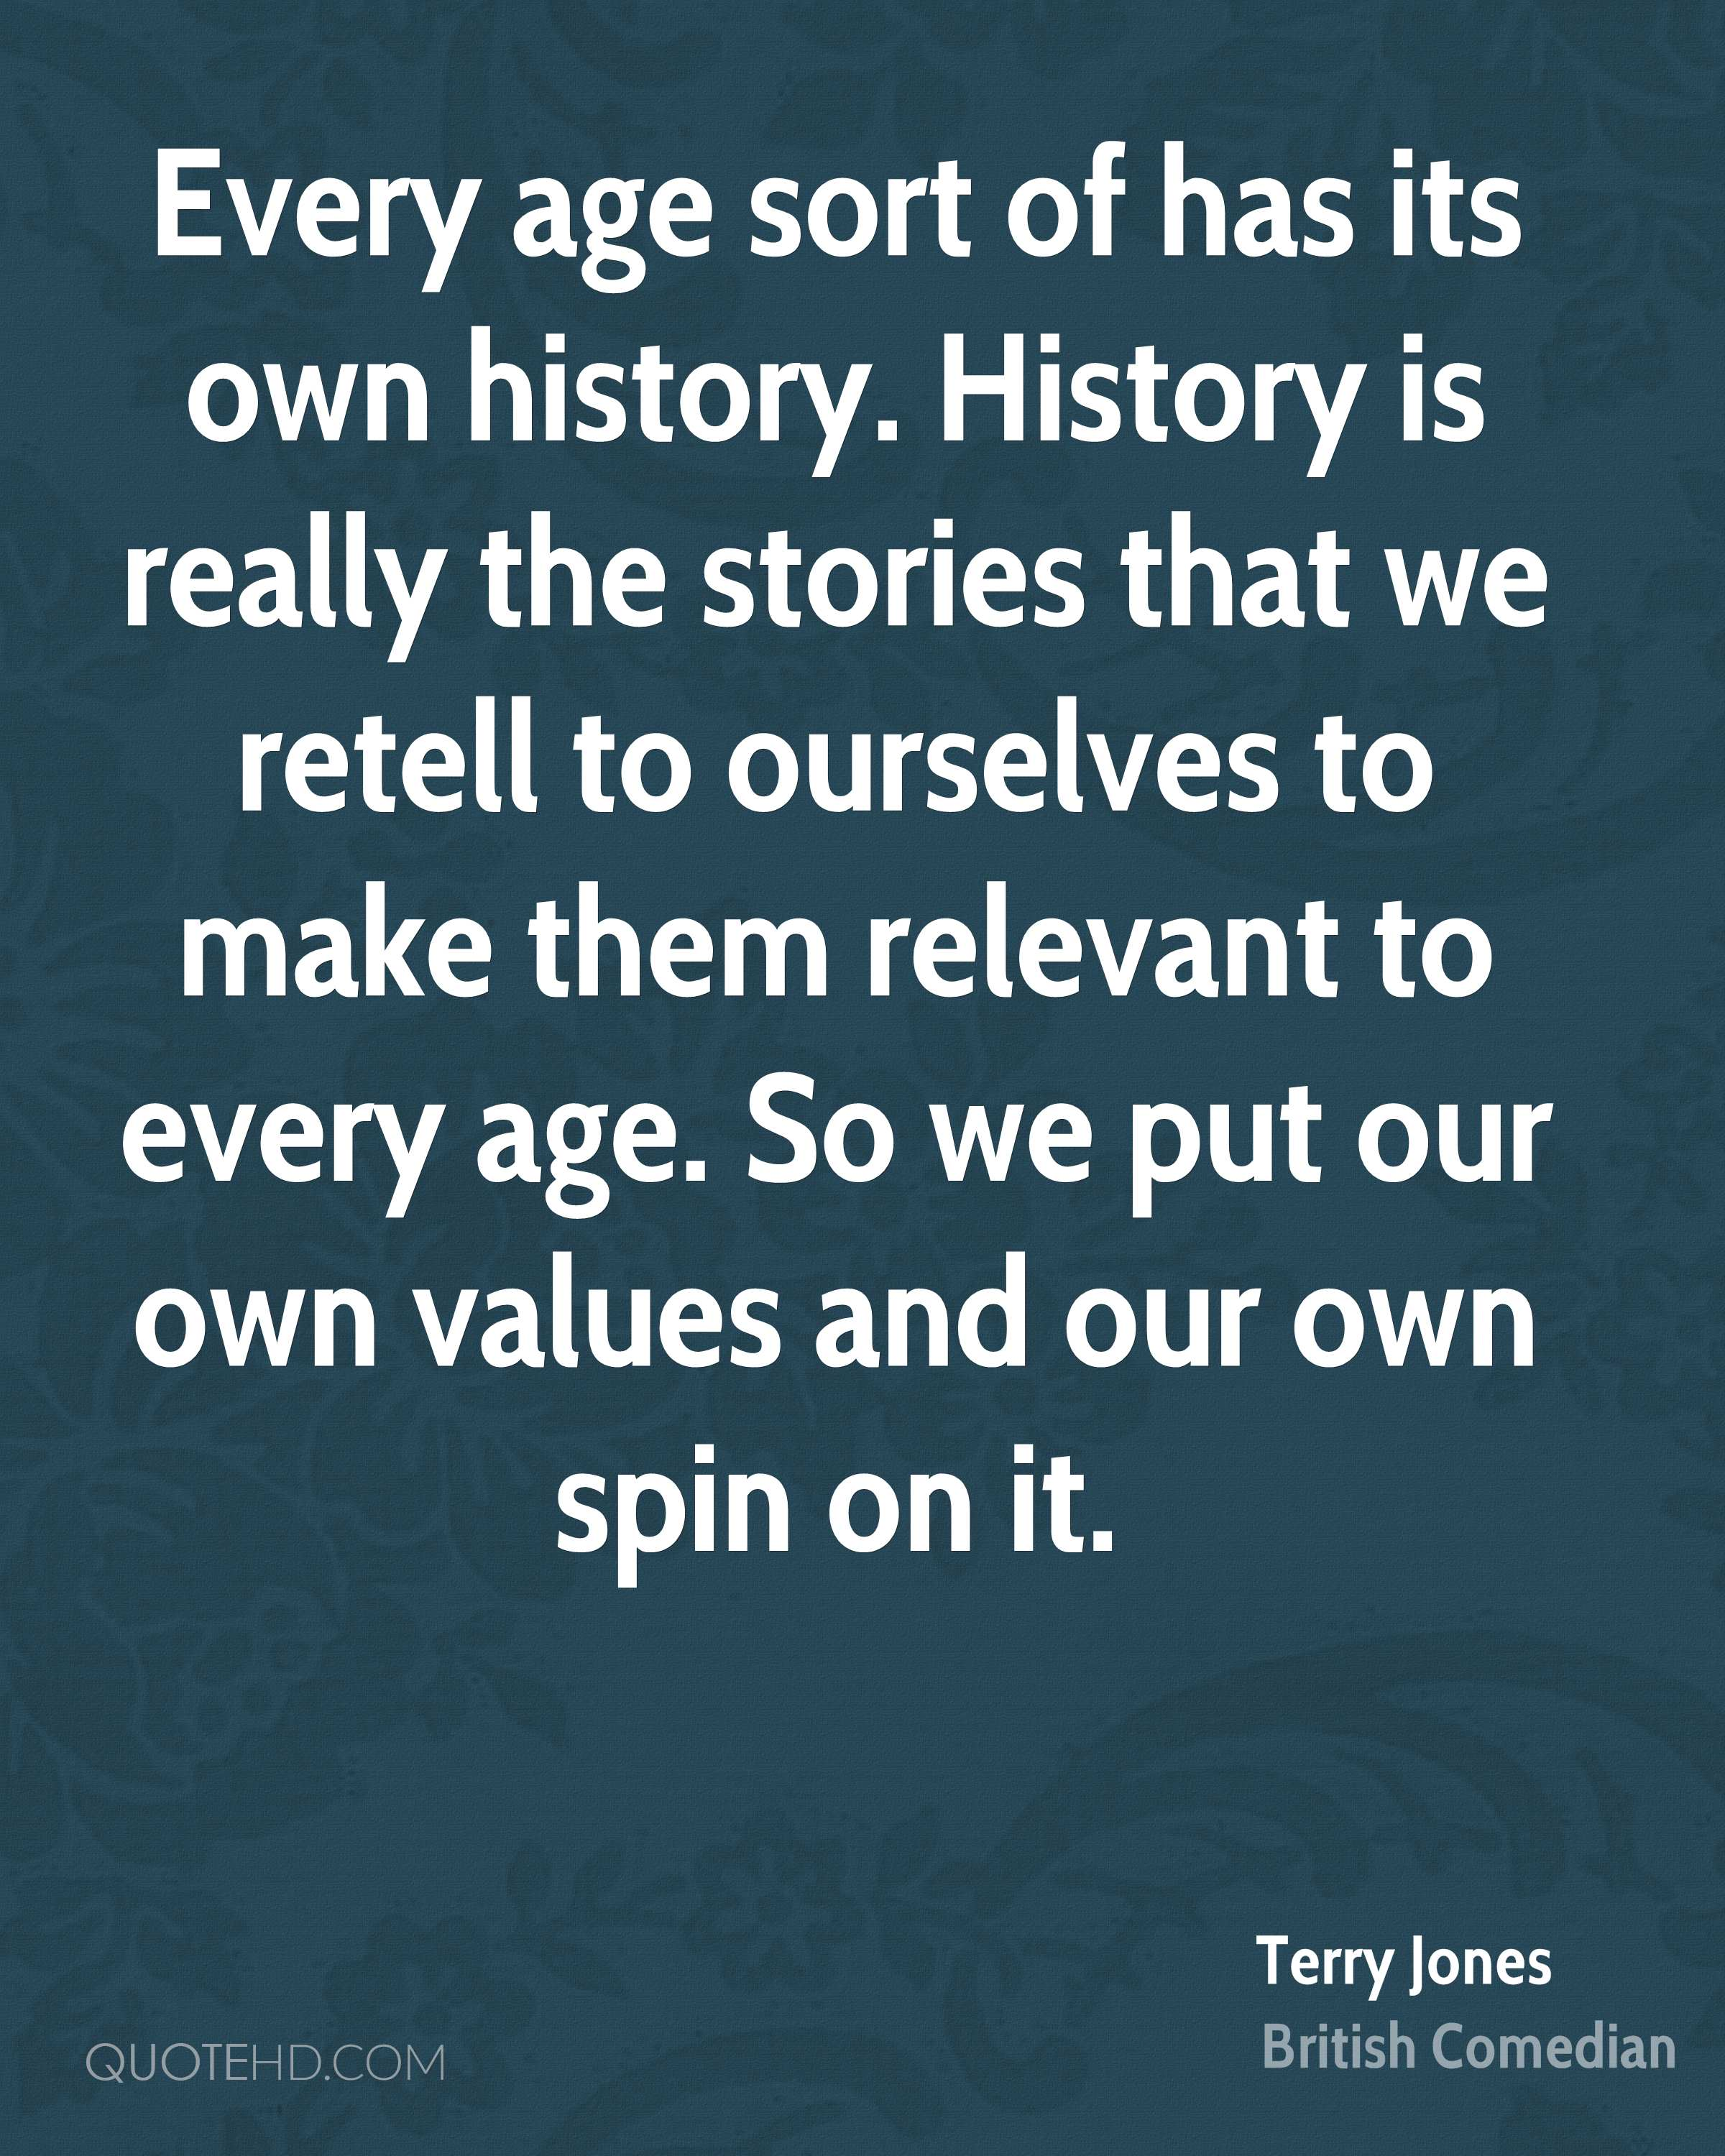 Every age sort of has its own history. History is really the stories that we retell to ourselves to make them relevant to every age. So we put our own values and our own spin on it.